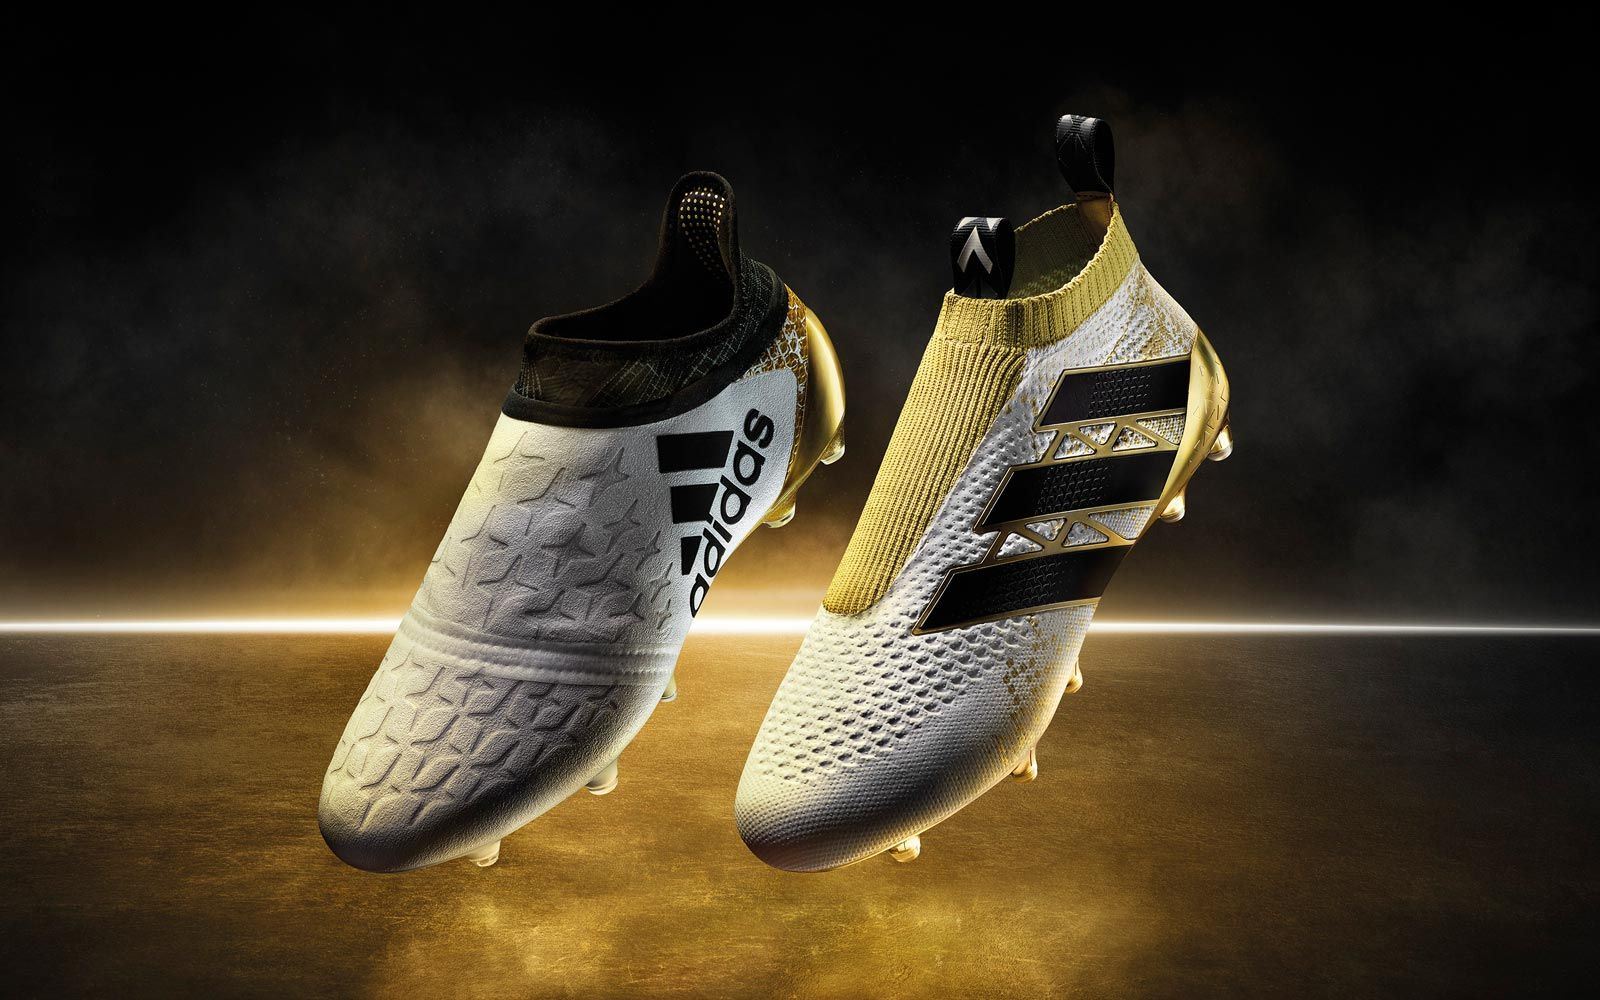 Adidas Ace 16 Purecontrol And X 16 Purechaos Boots From The Stellar Pack Best Soccer Cleats Soccer Boots Soccer Shoes